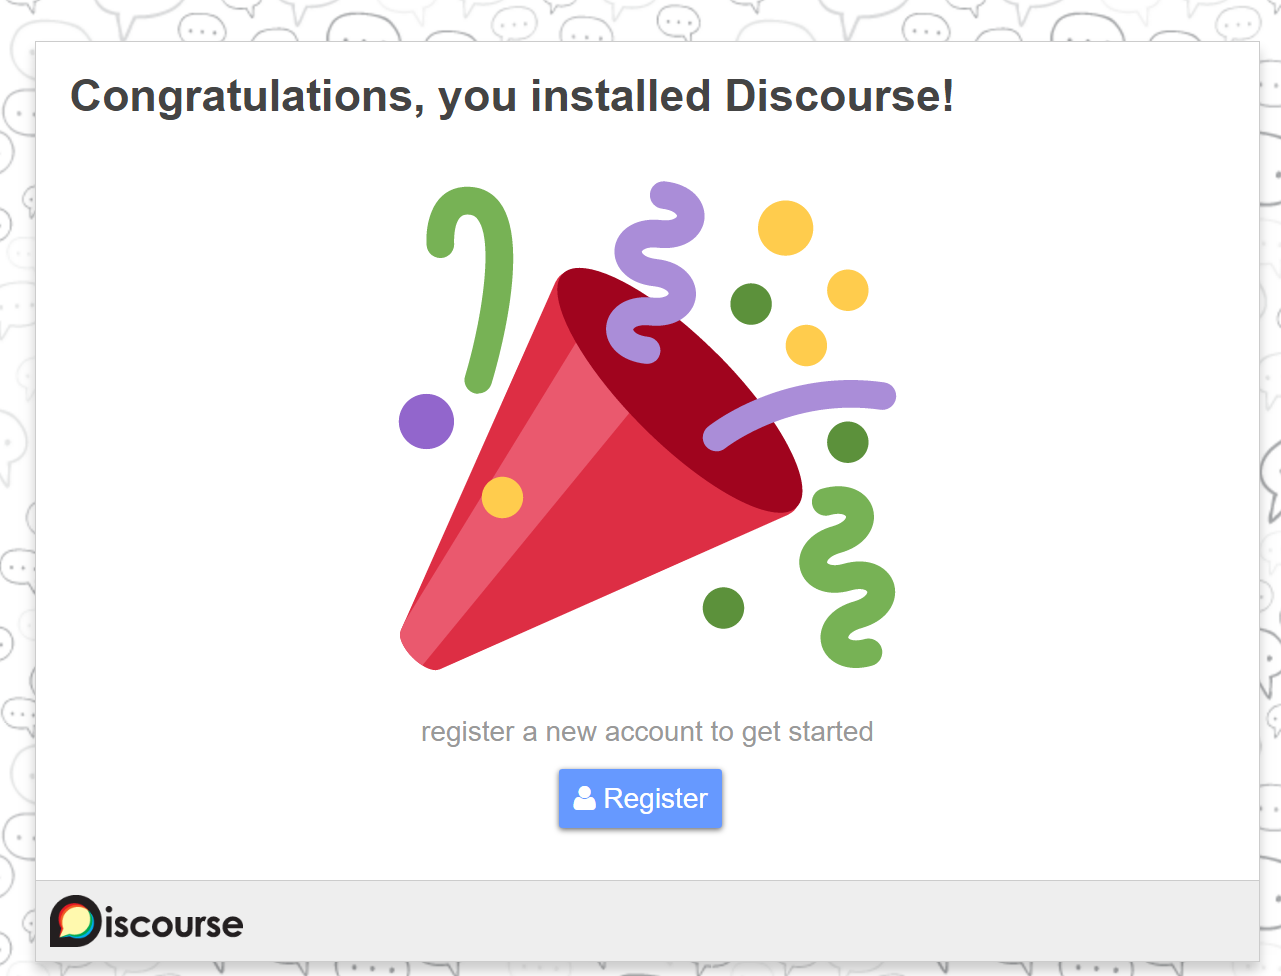 Discourse congratulations screen